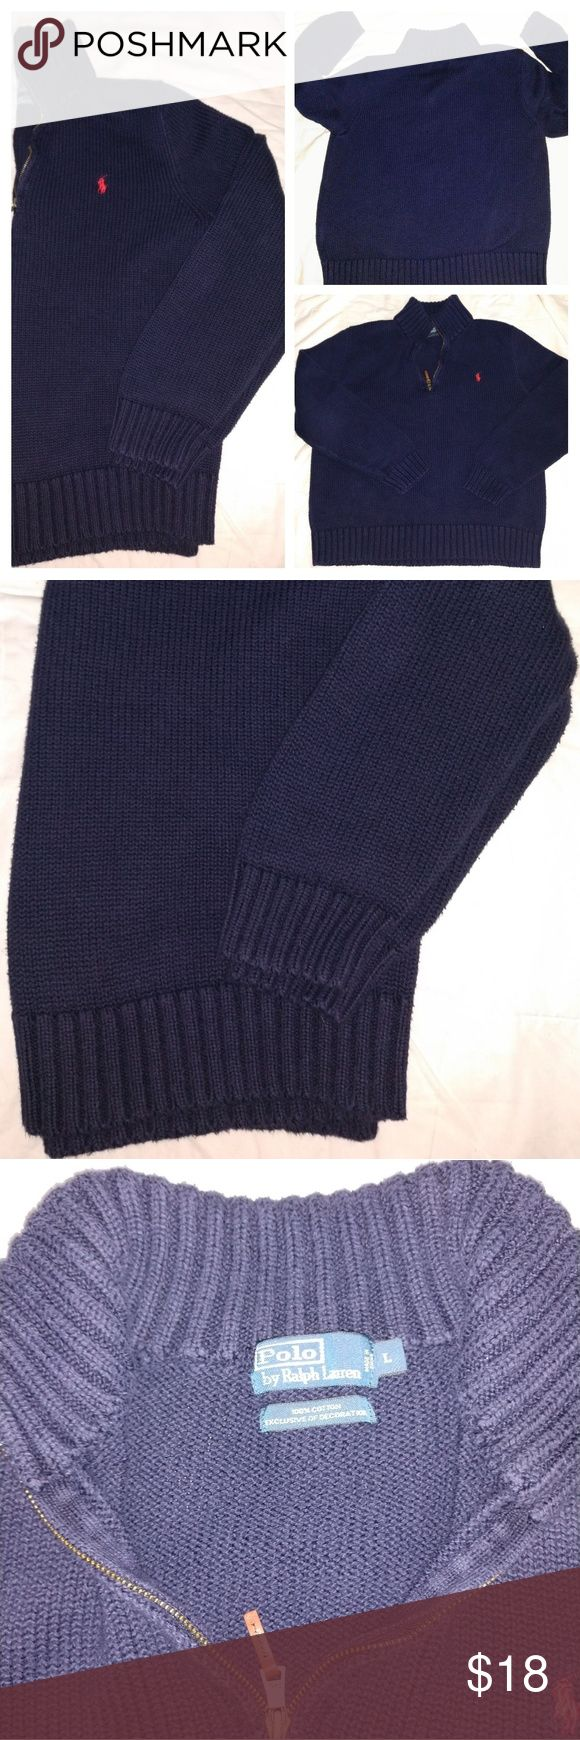 Polo Pullover Sweater Navy blue men's Cotton pullover sweater by Ralph Lauren Polo by Ralph Lauren Sweaters Zip Up